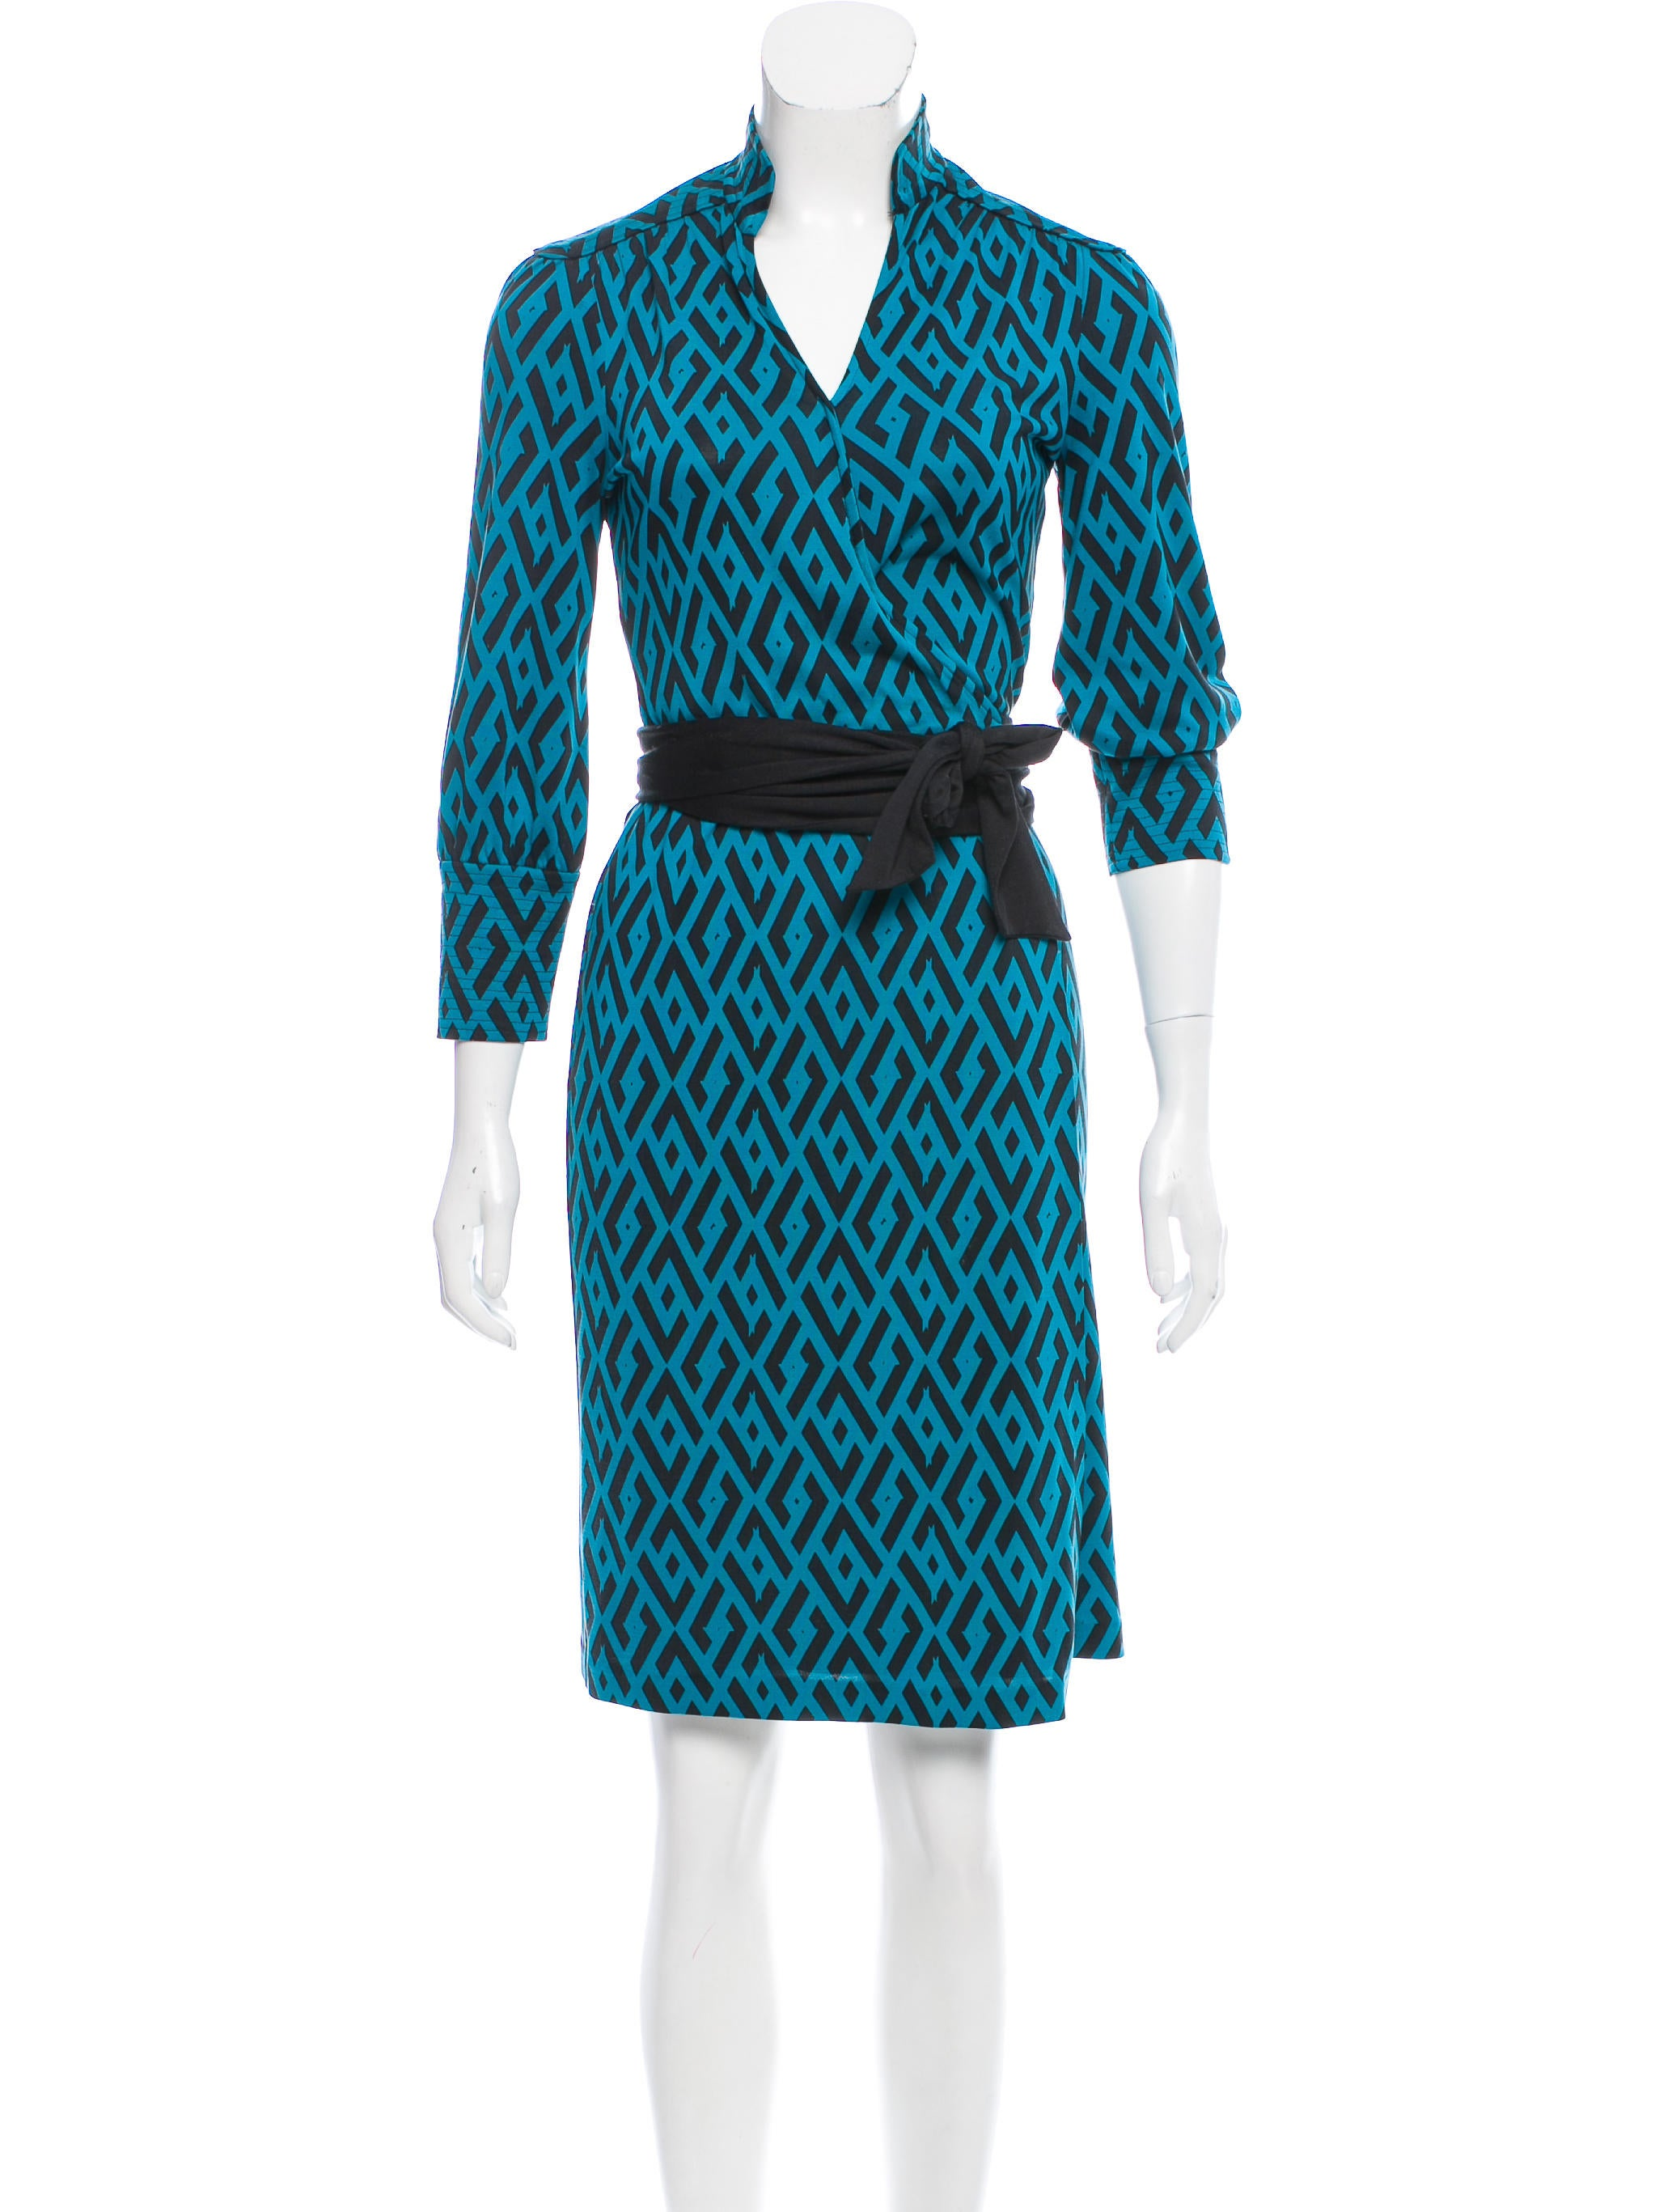 Diane von furstenberg tessa wrap dress clothing for Diane von furstenberg clothes